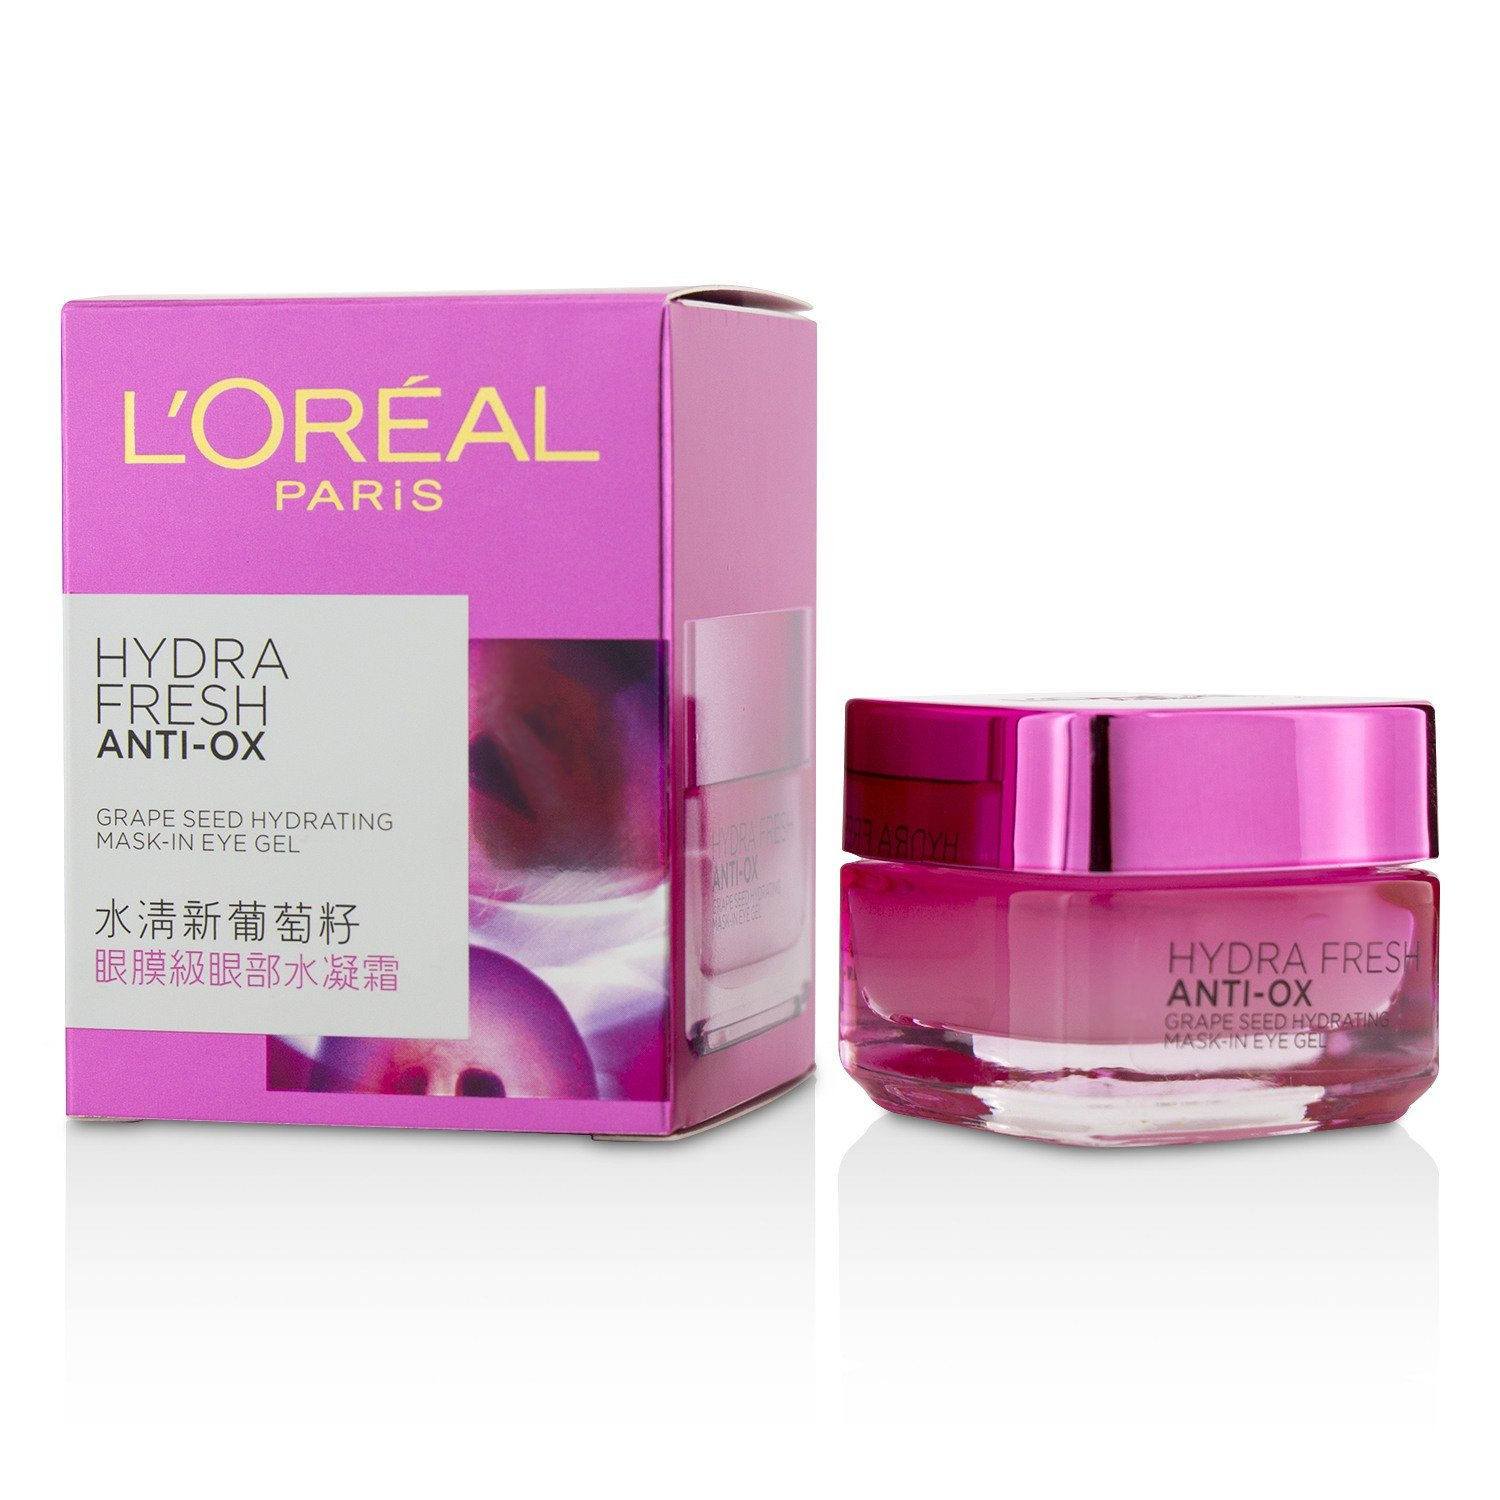 L'Oreal Paris Hydrafresh Anti-Ox Grape seed Hydrating Mask-In Eye Gel, 15ml